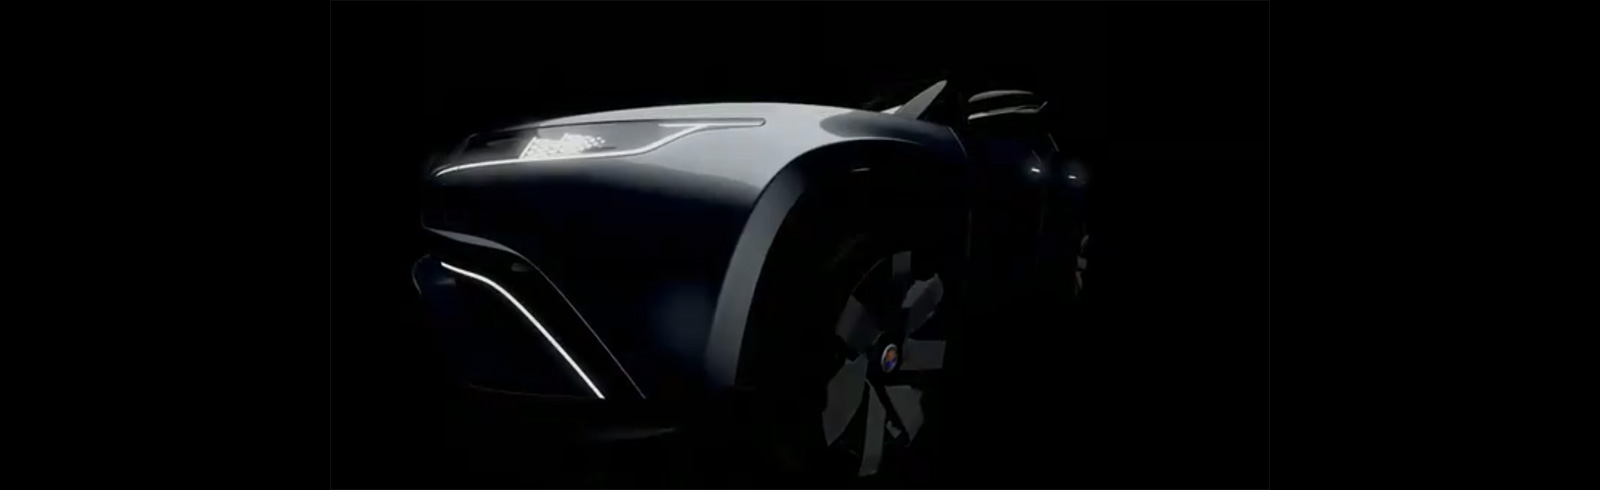 The official name of the new all-electric Fisker vehicle will be announced next week